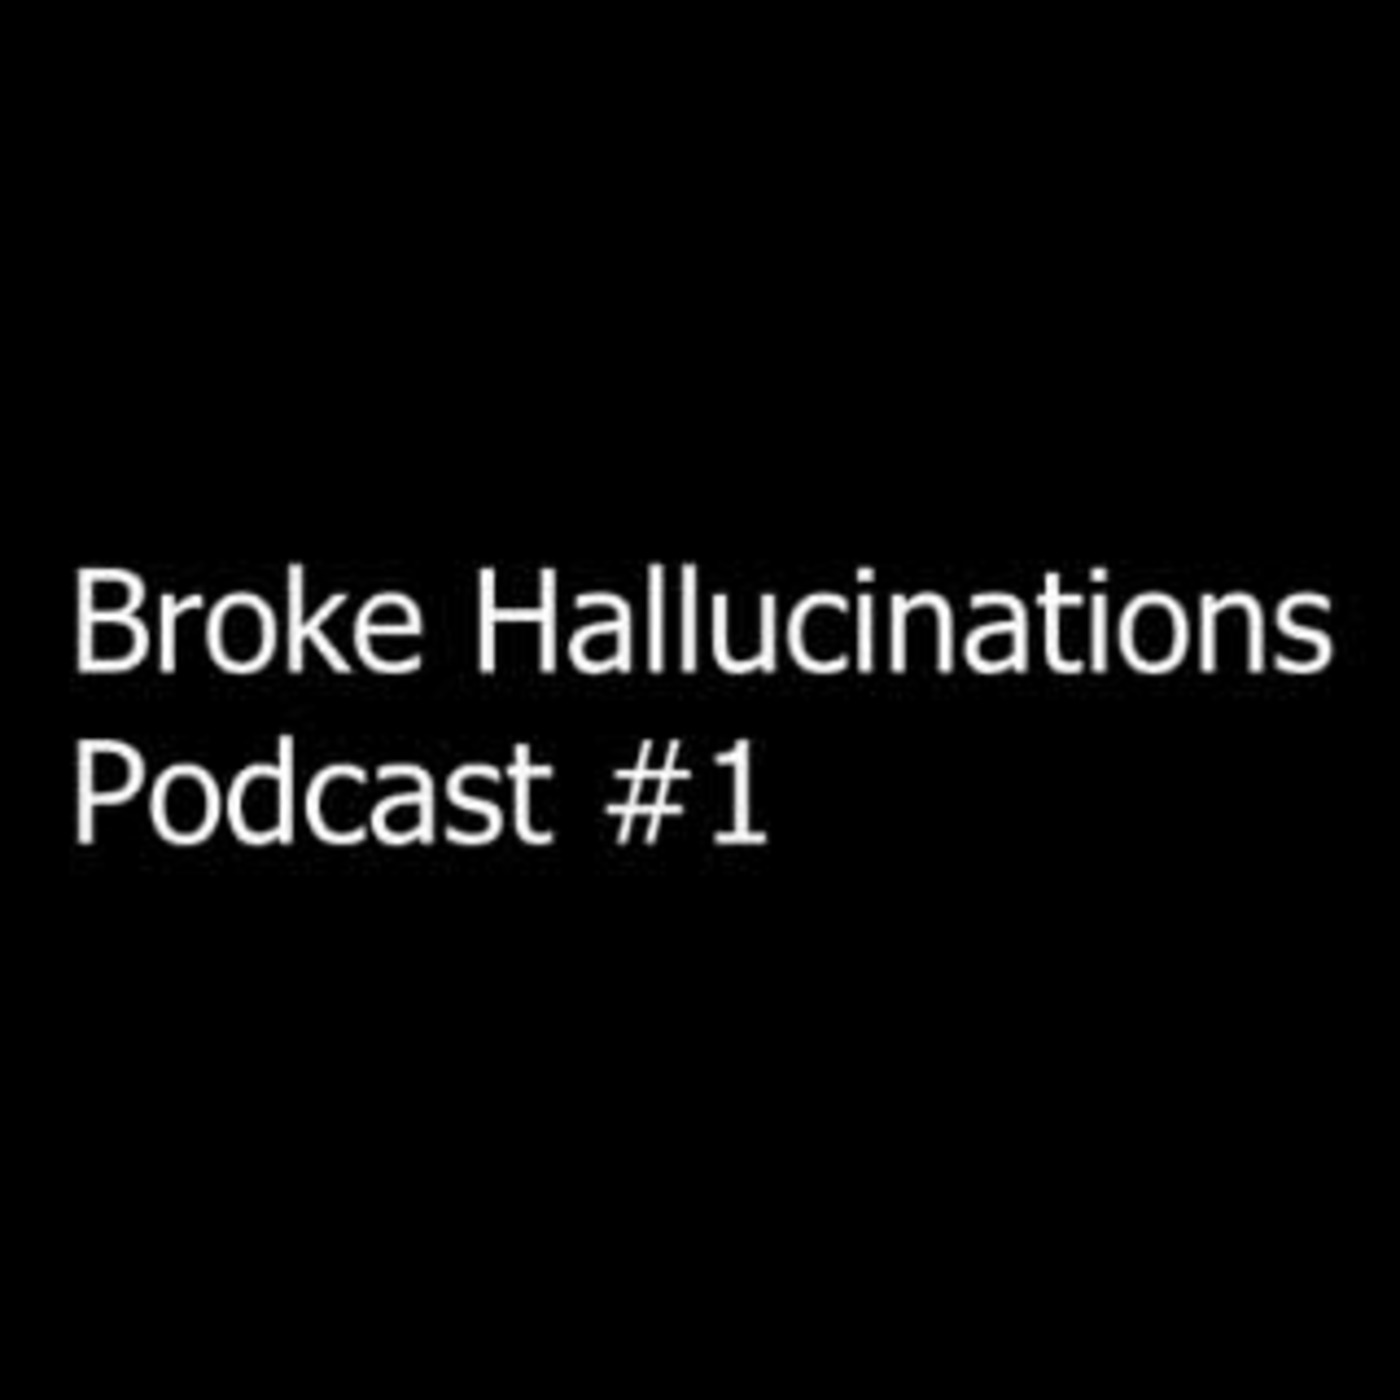 Broke Hallucinations Movie Podcast